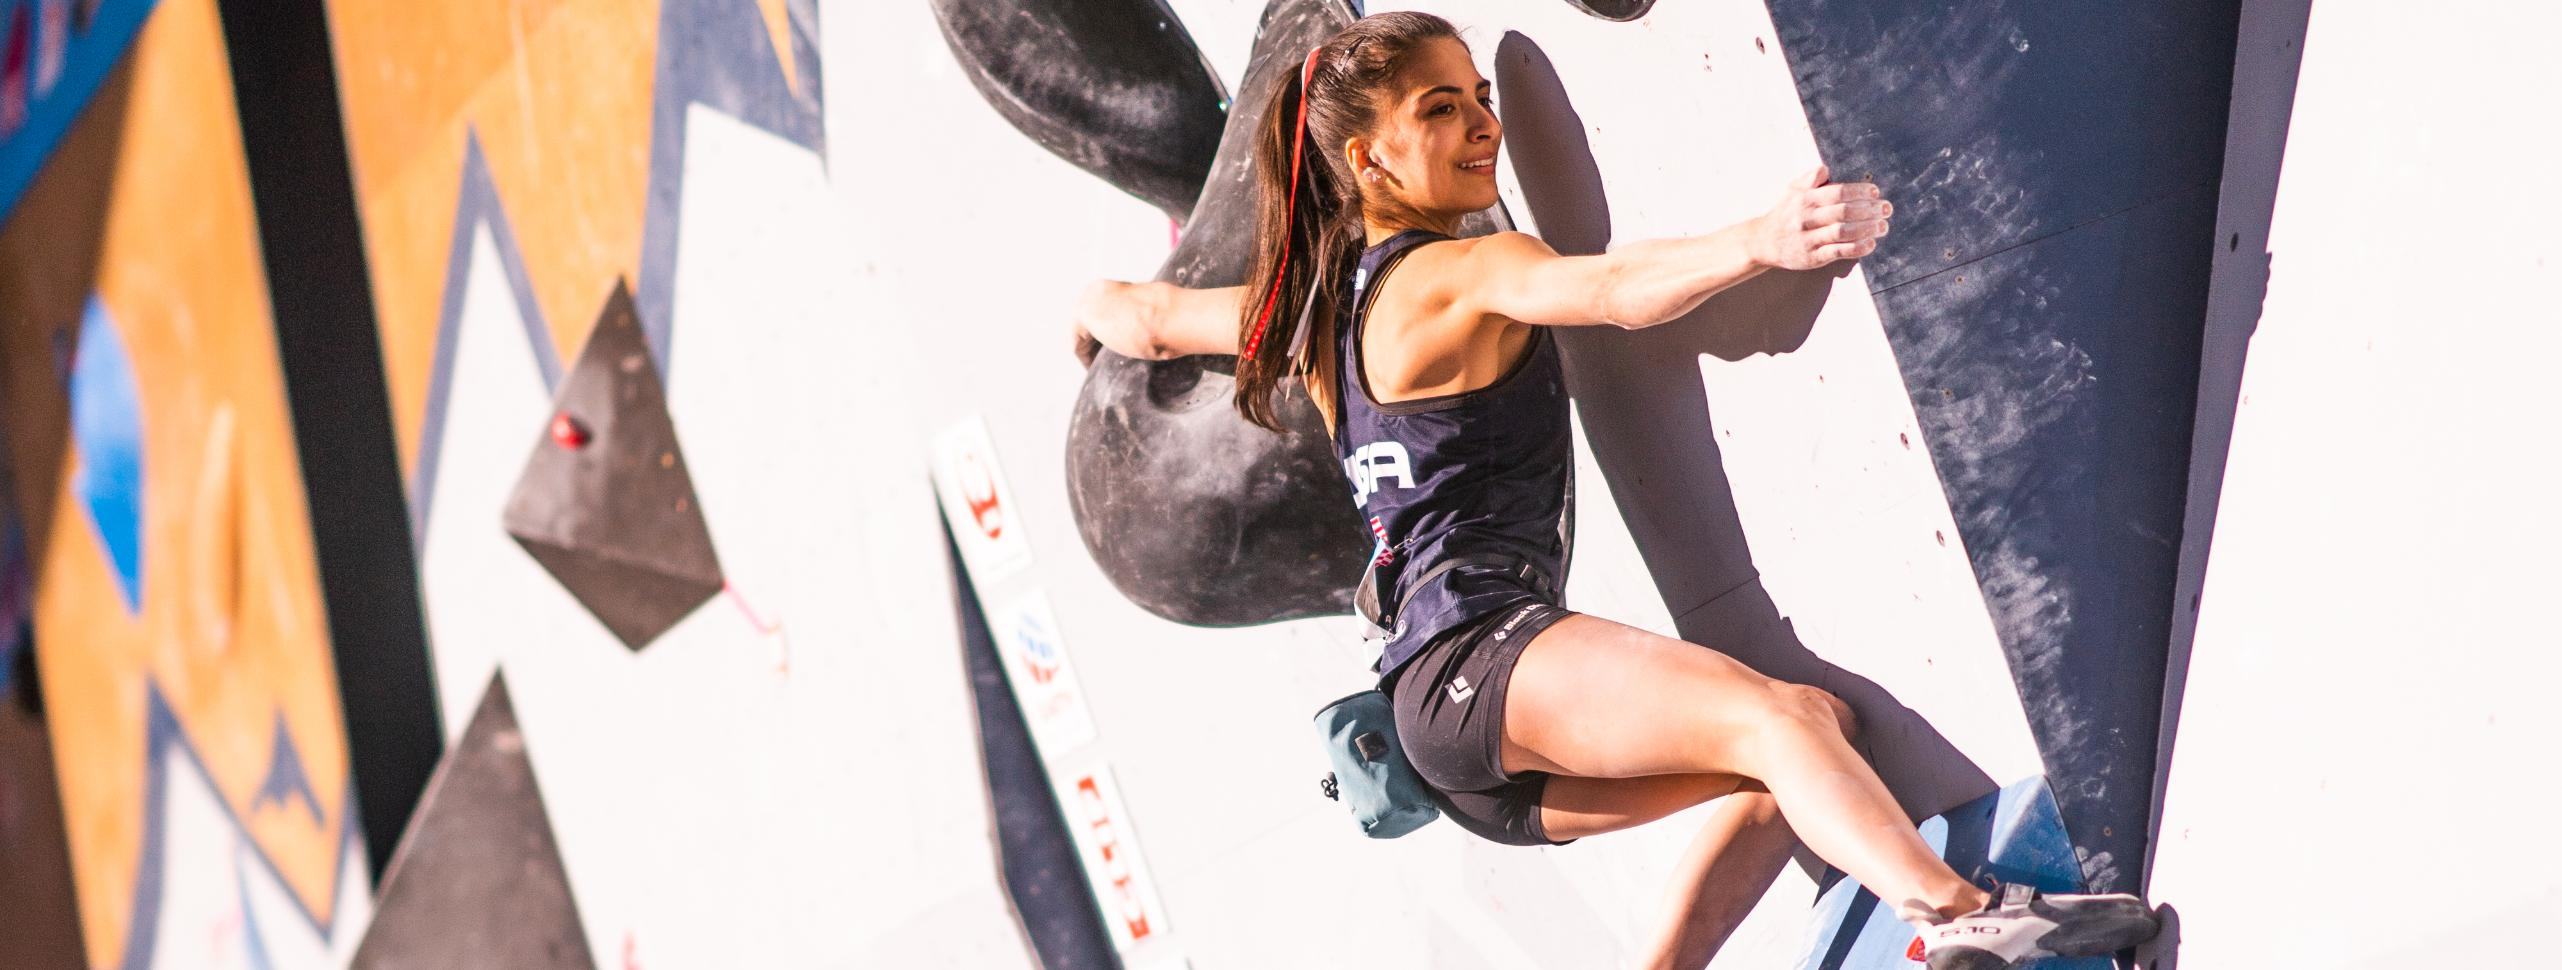 TEAM USA CRUSHES BOTH BOULDER FINALS IN SALT LAKE CITY WITH BAILEY AND GROSSMAN